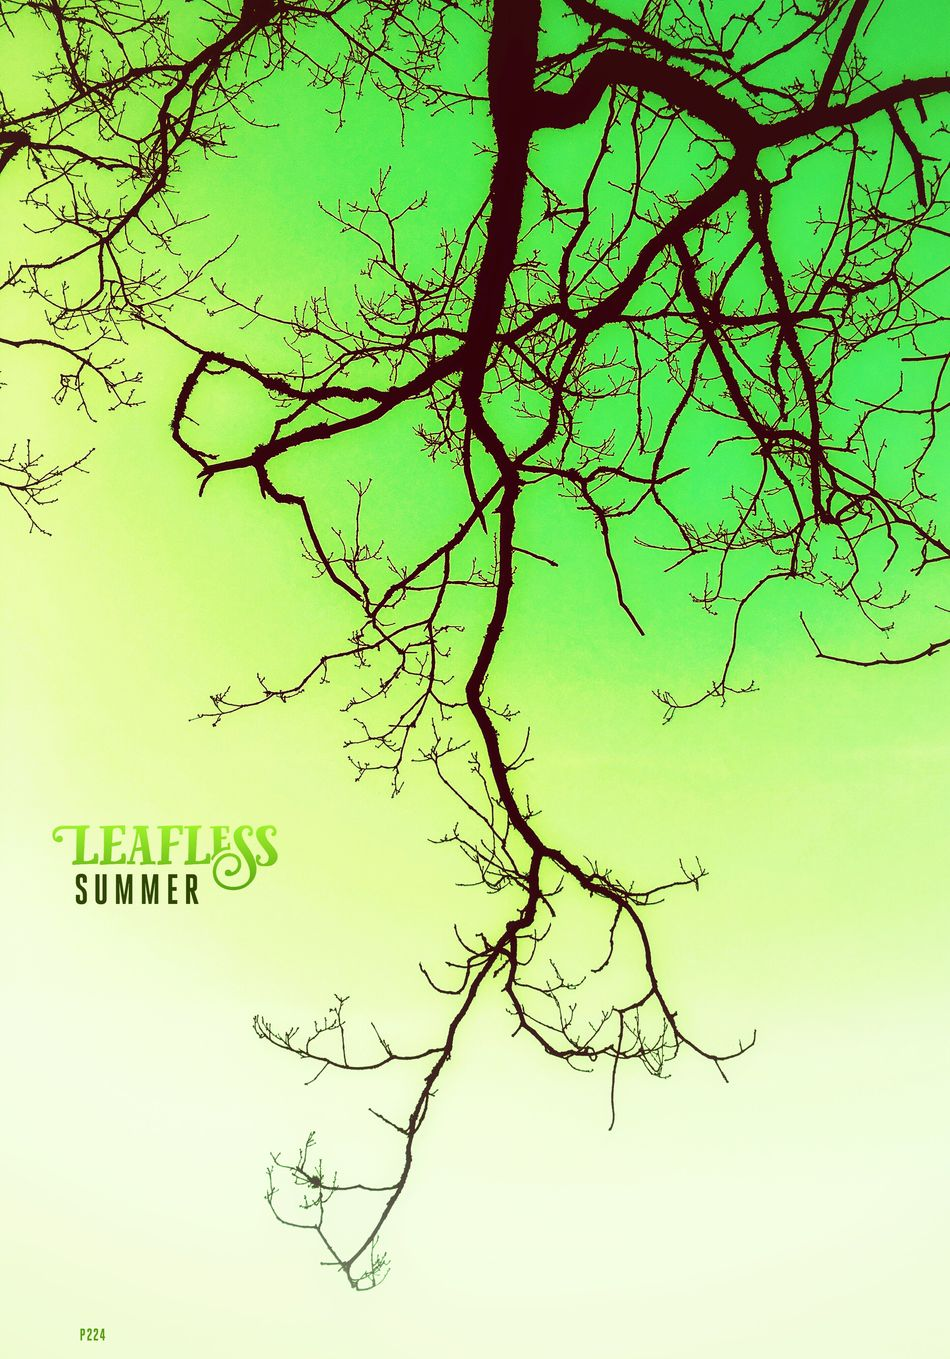 Leafless Summer. P224 Onephotoaday IPhoneography 365project2016 Nature Low Angle View Typography Phonto Green Fresh Summer Leafless Leafless Tree Clear Sky Branch Outdoors